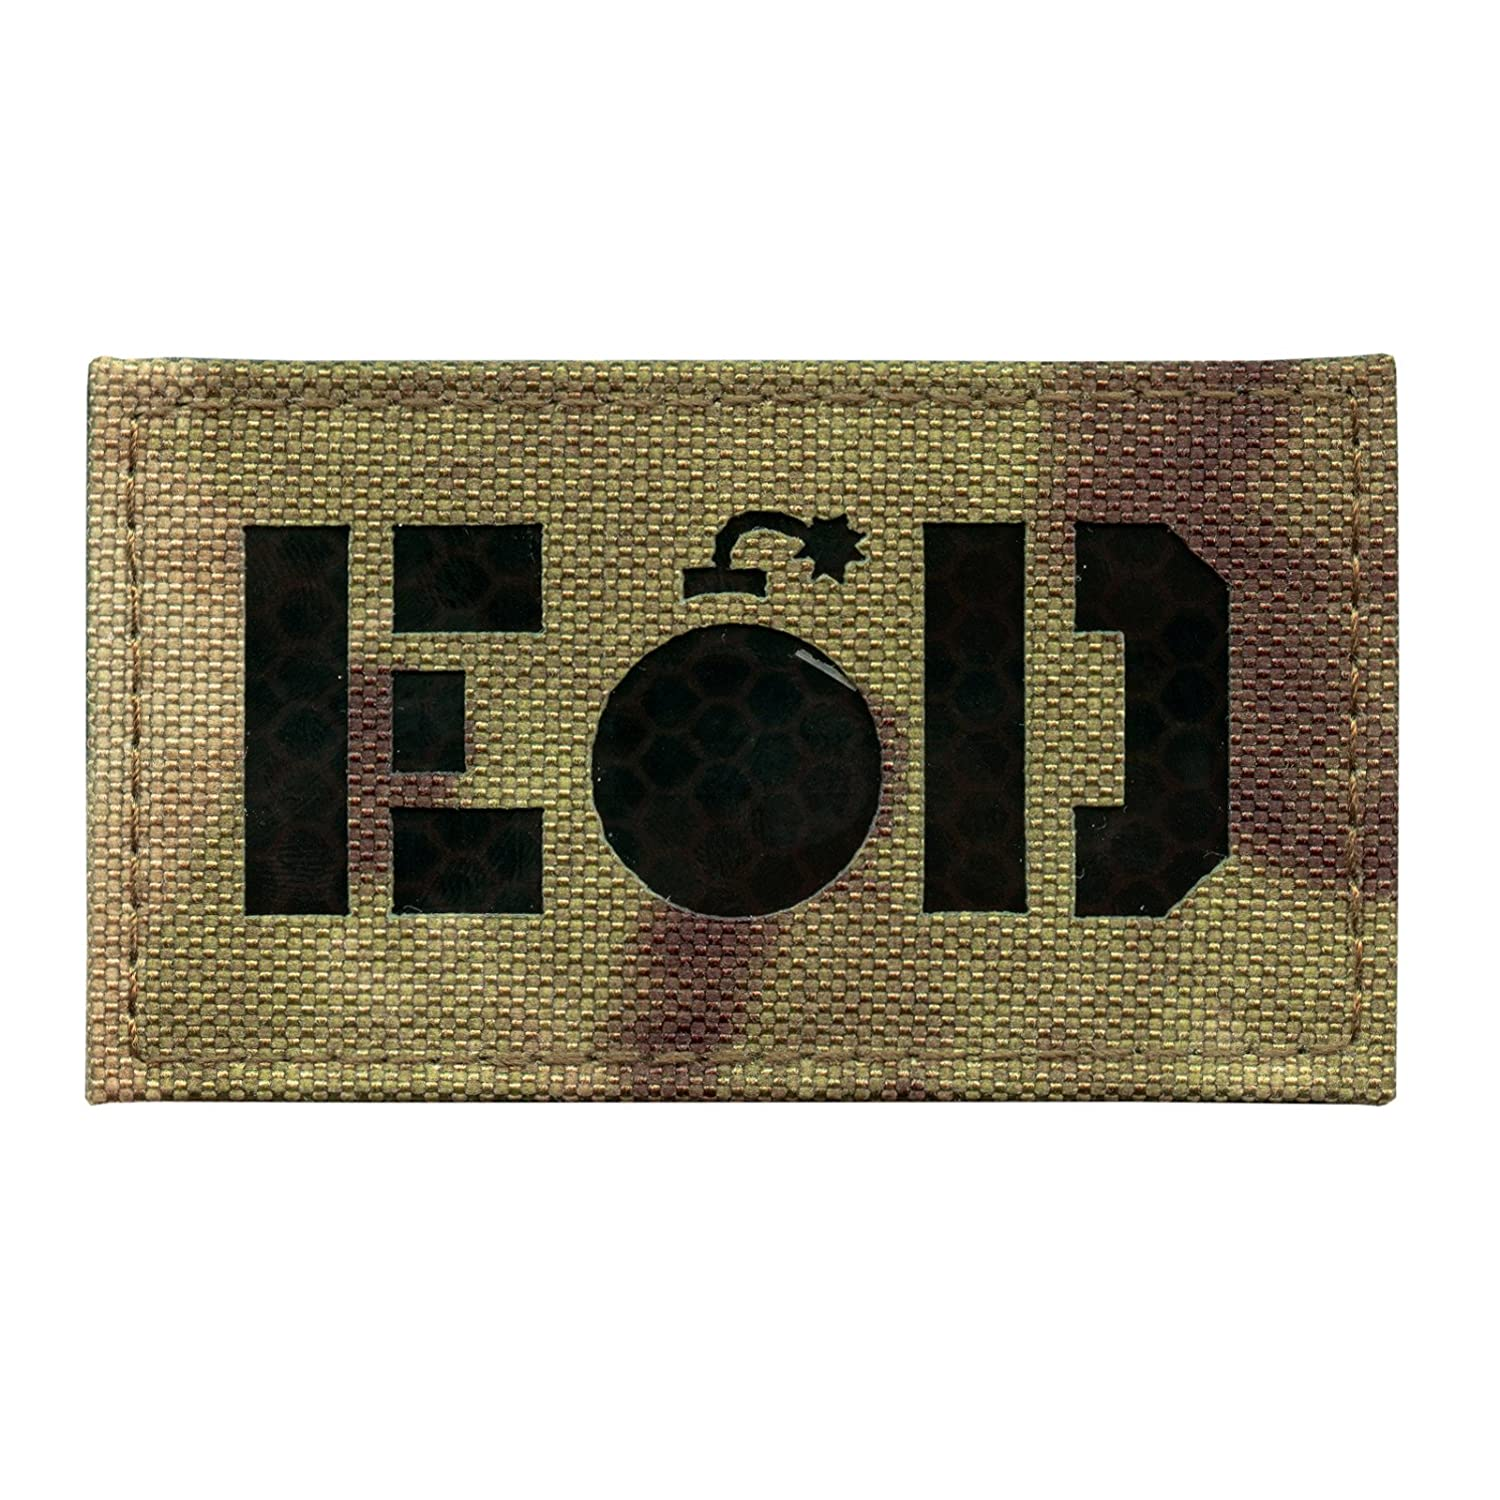 2AFTER1 Infrared IR Multicam EOD Explosive Ordnance Disposal Morale Tactical Fastener Patch